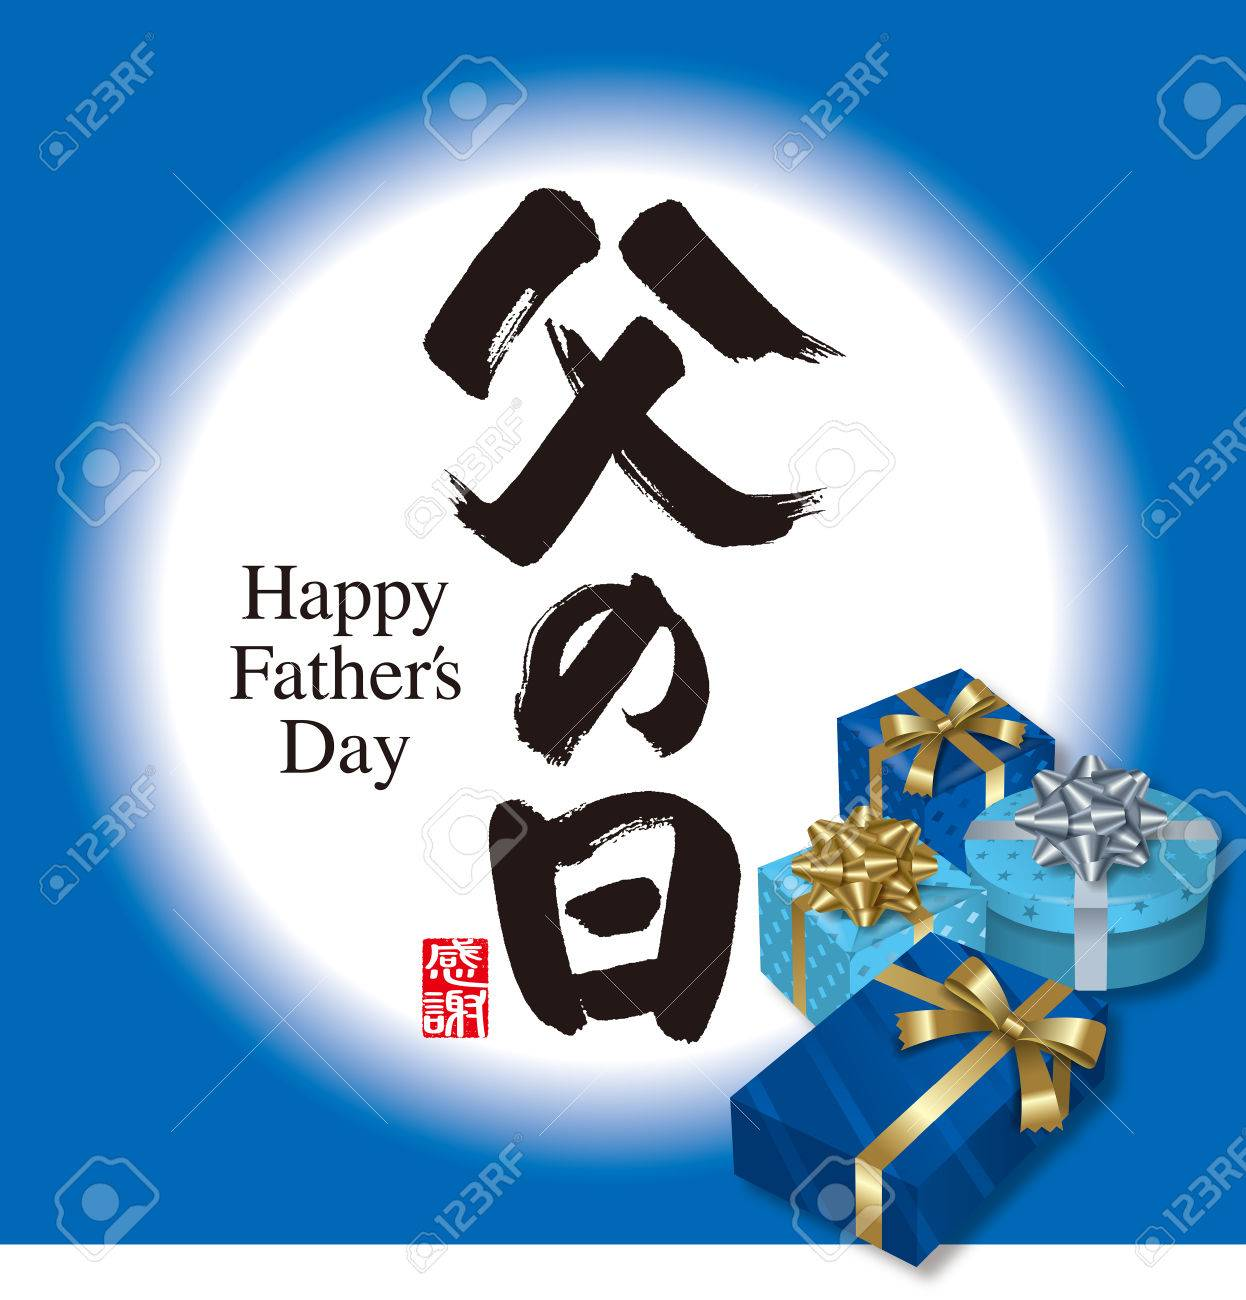 Father S Day Calligraphy Of Japanese Stock Photo Picture And